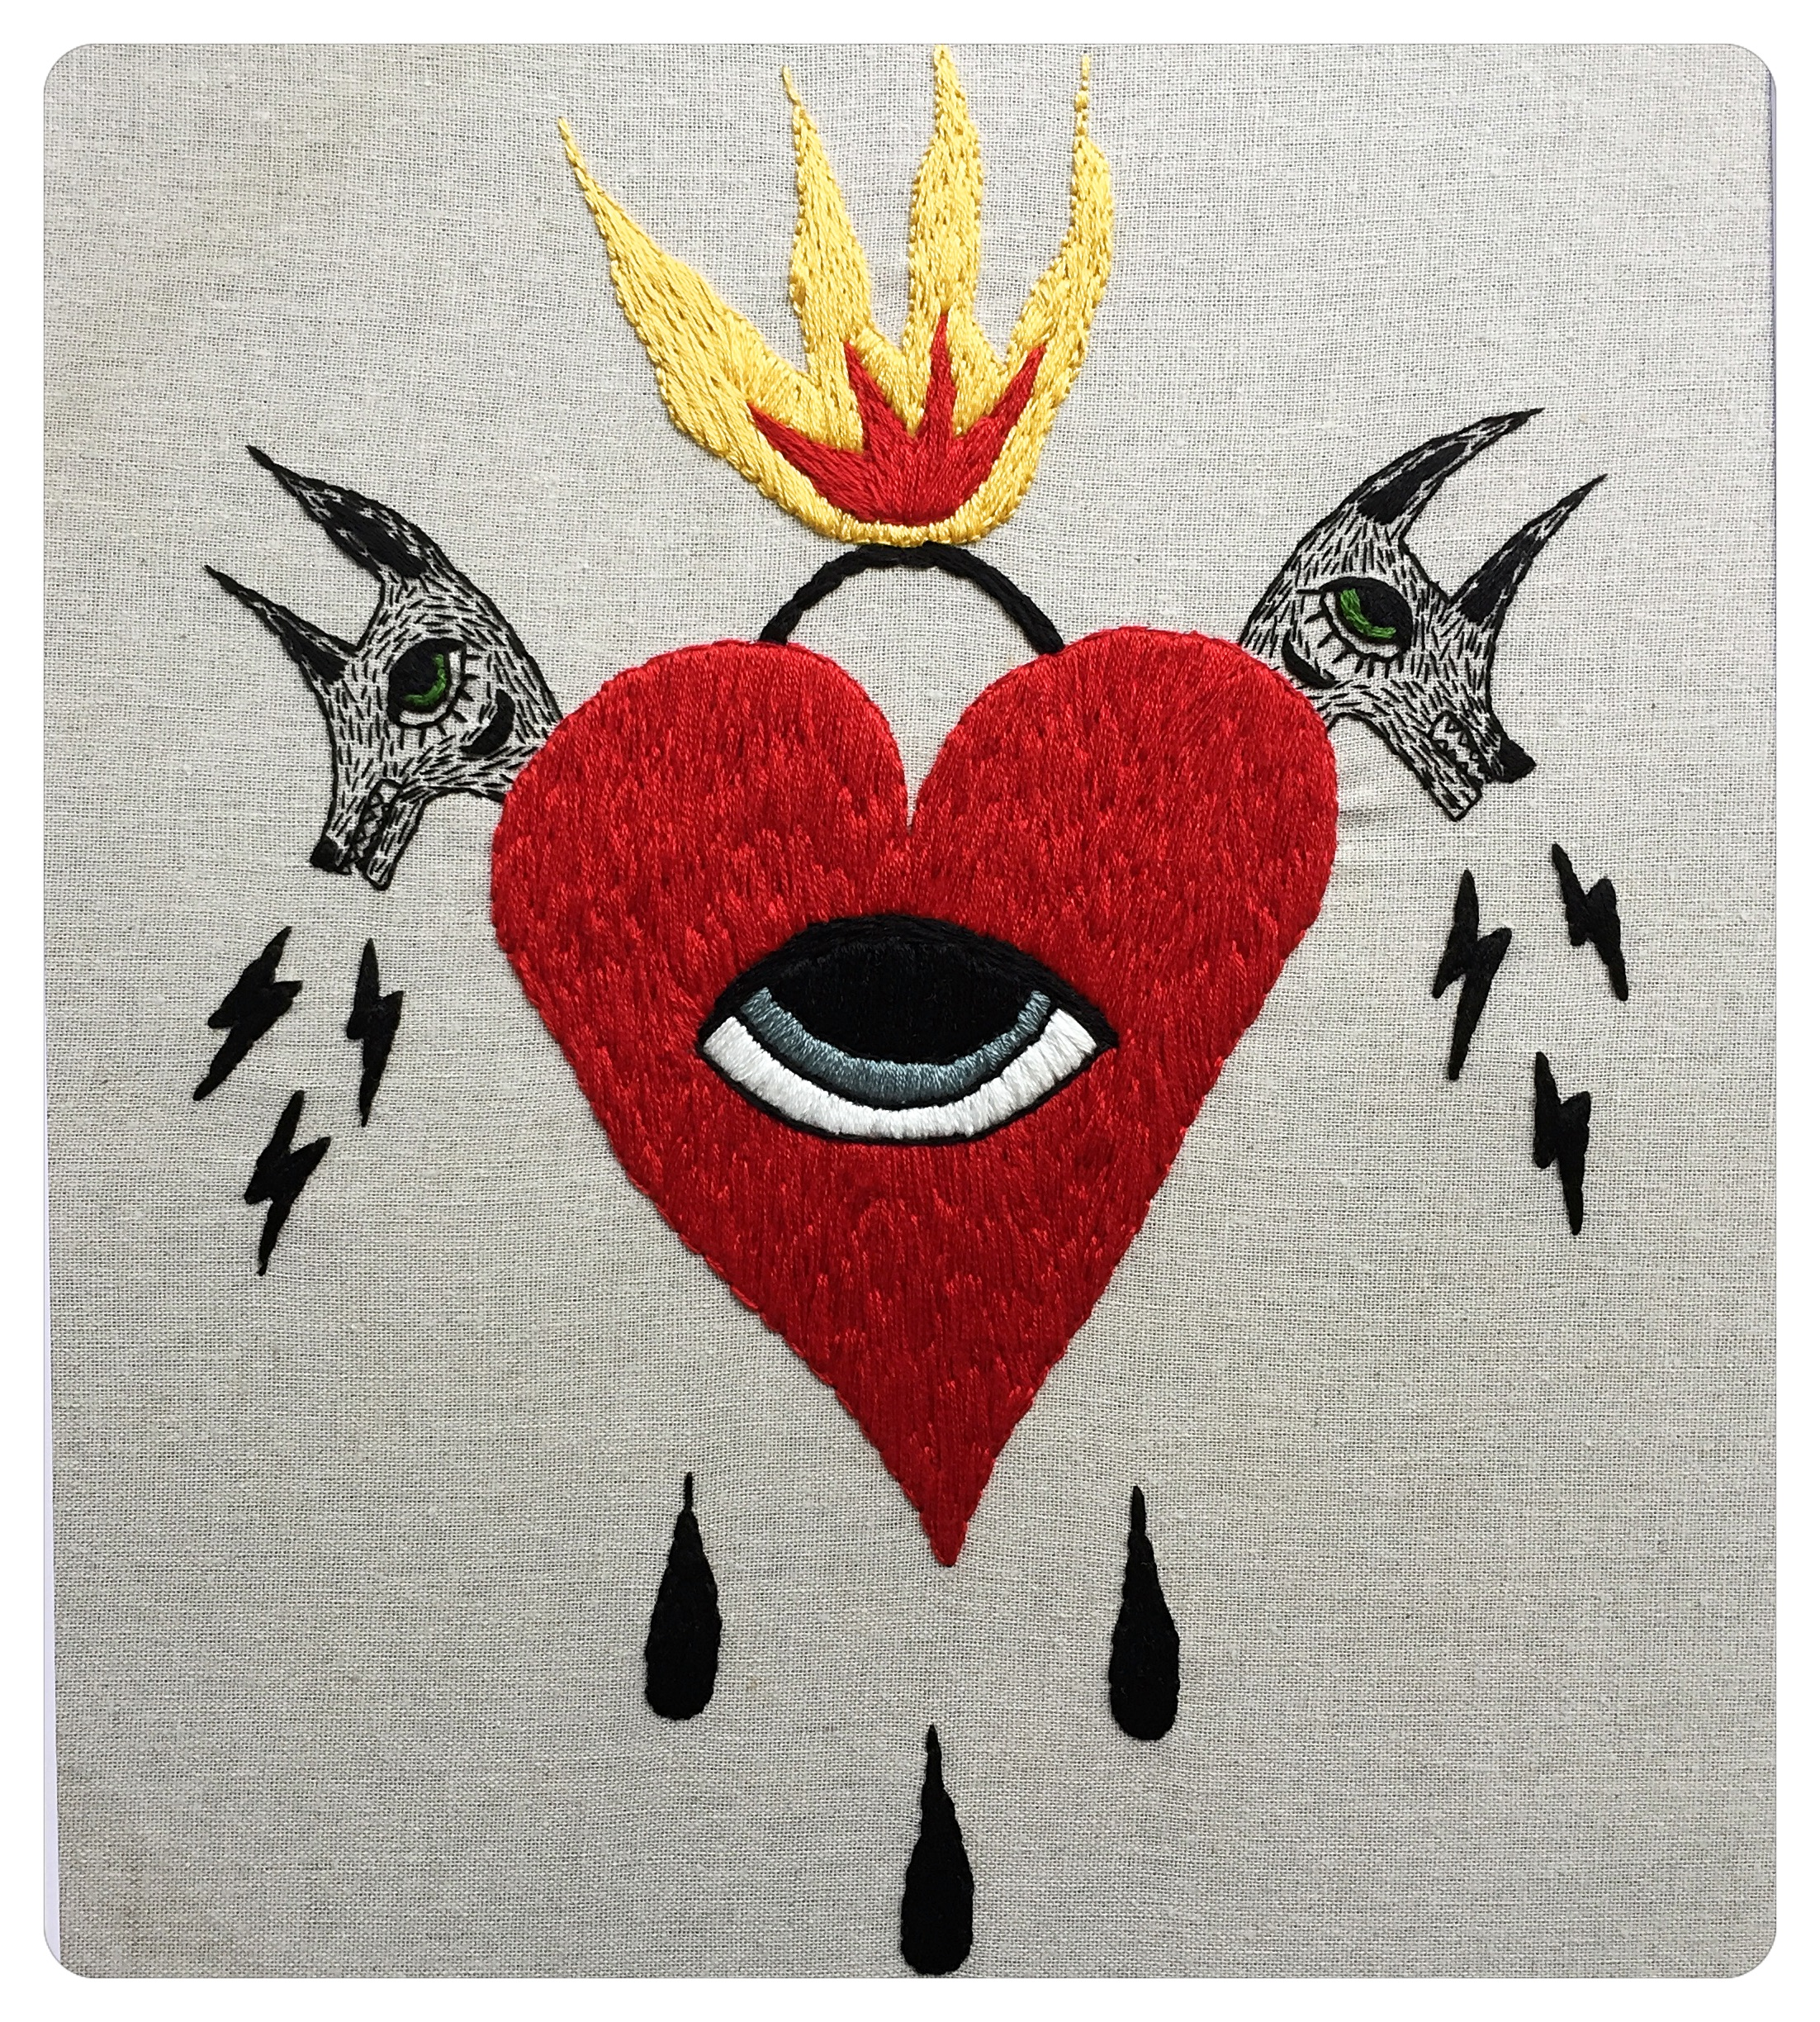 'Heart of a wolf'